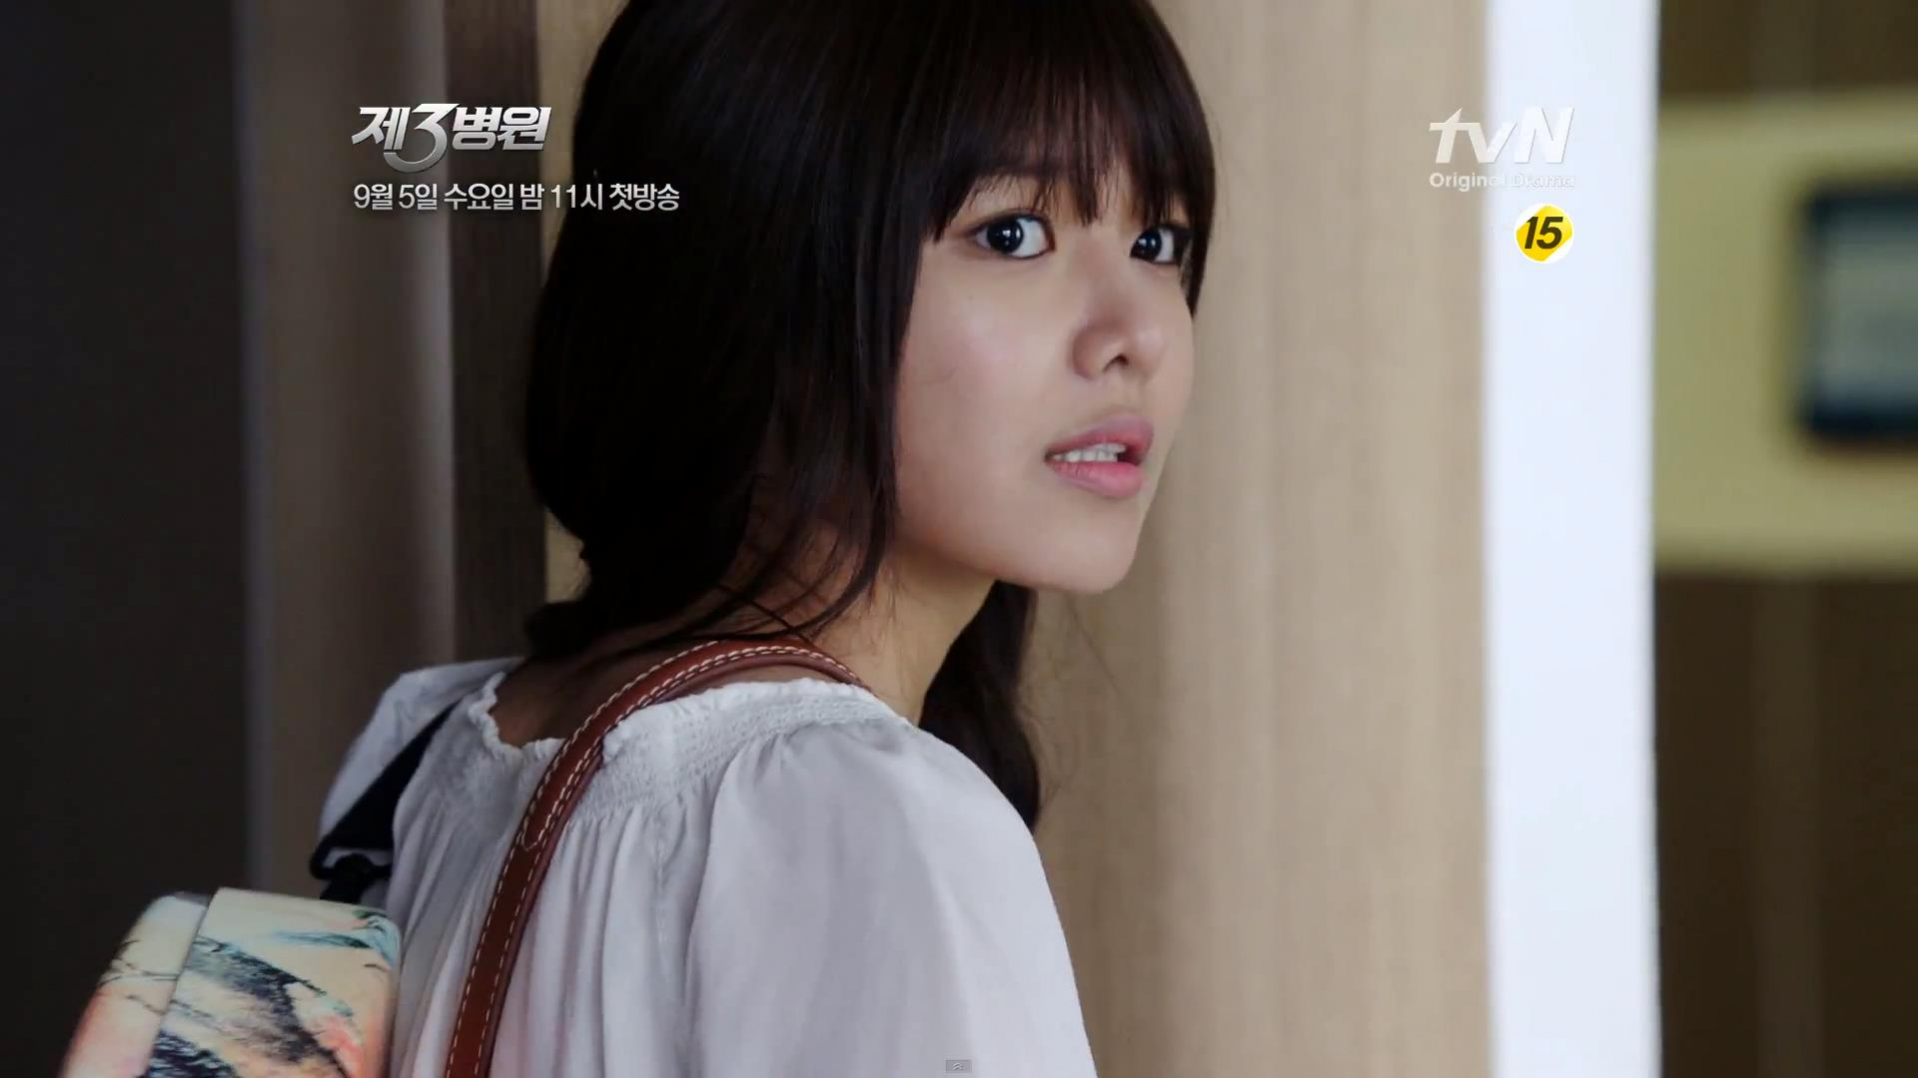 2012.09.04_snsdsooyoung_thirdhospital